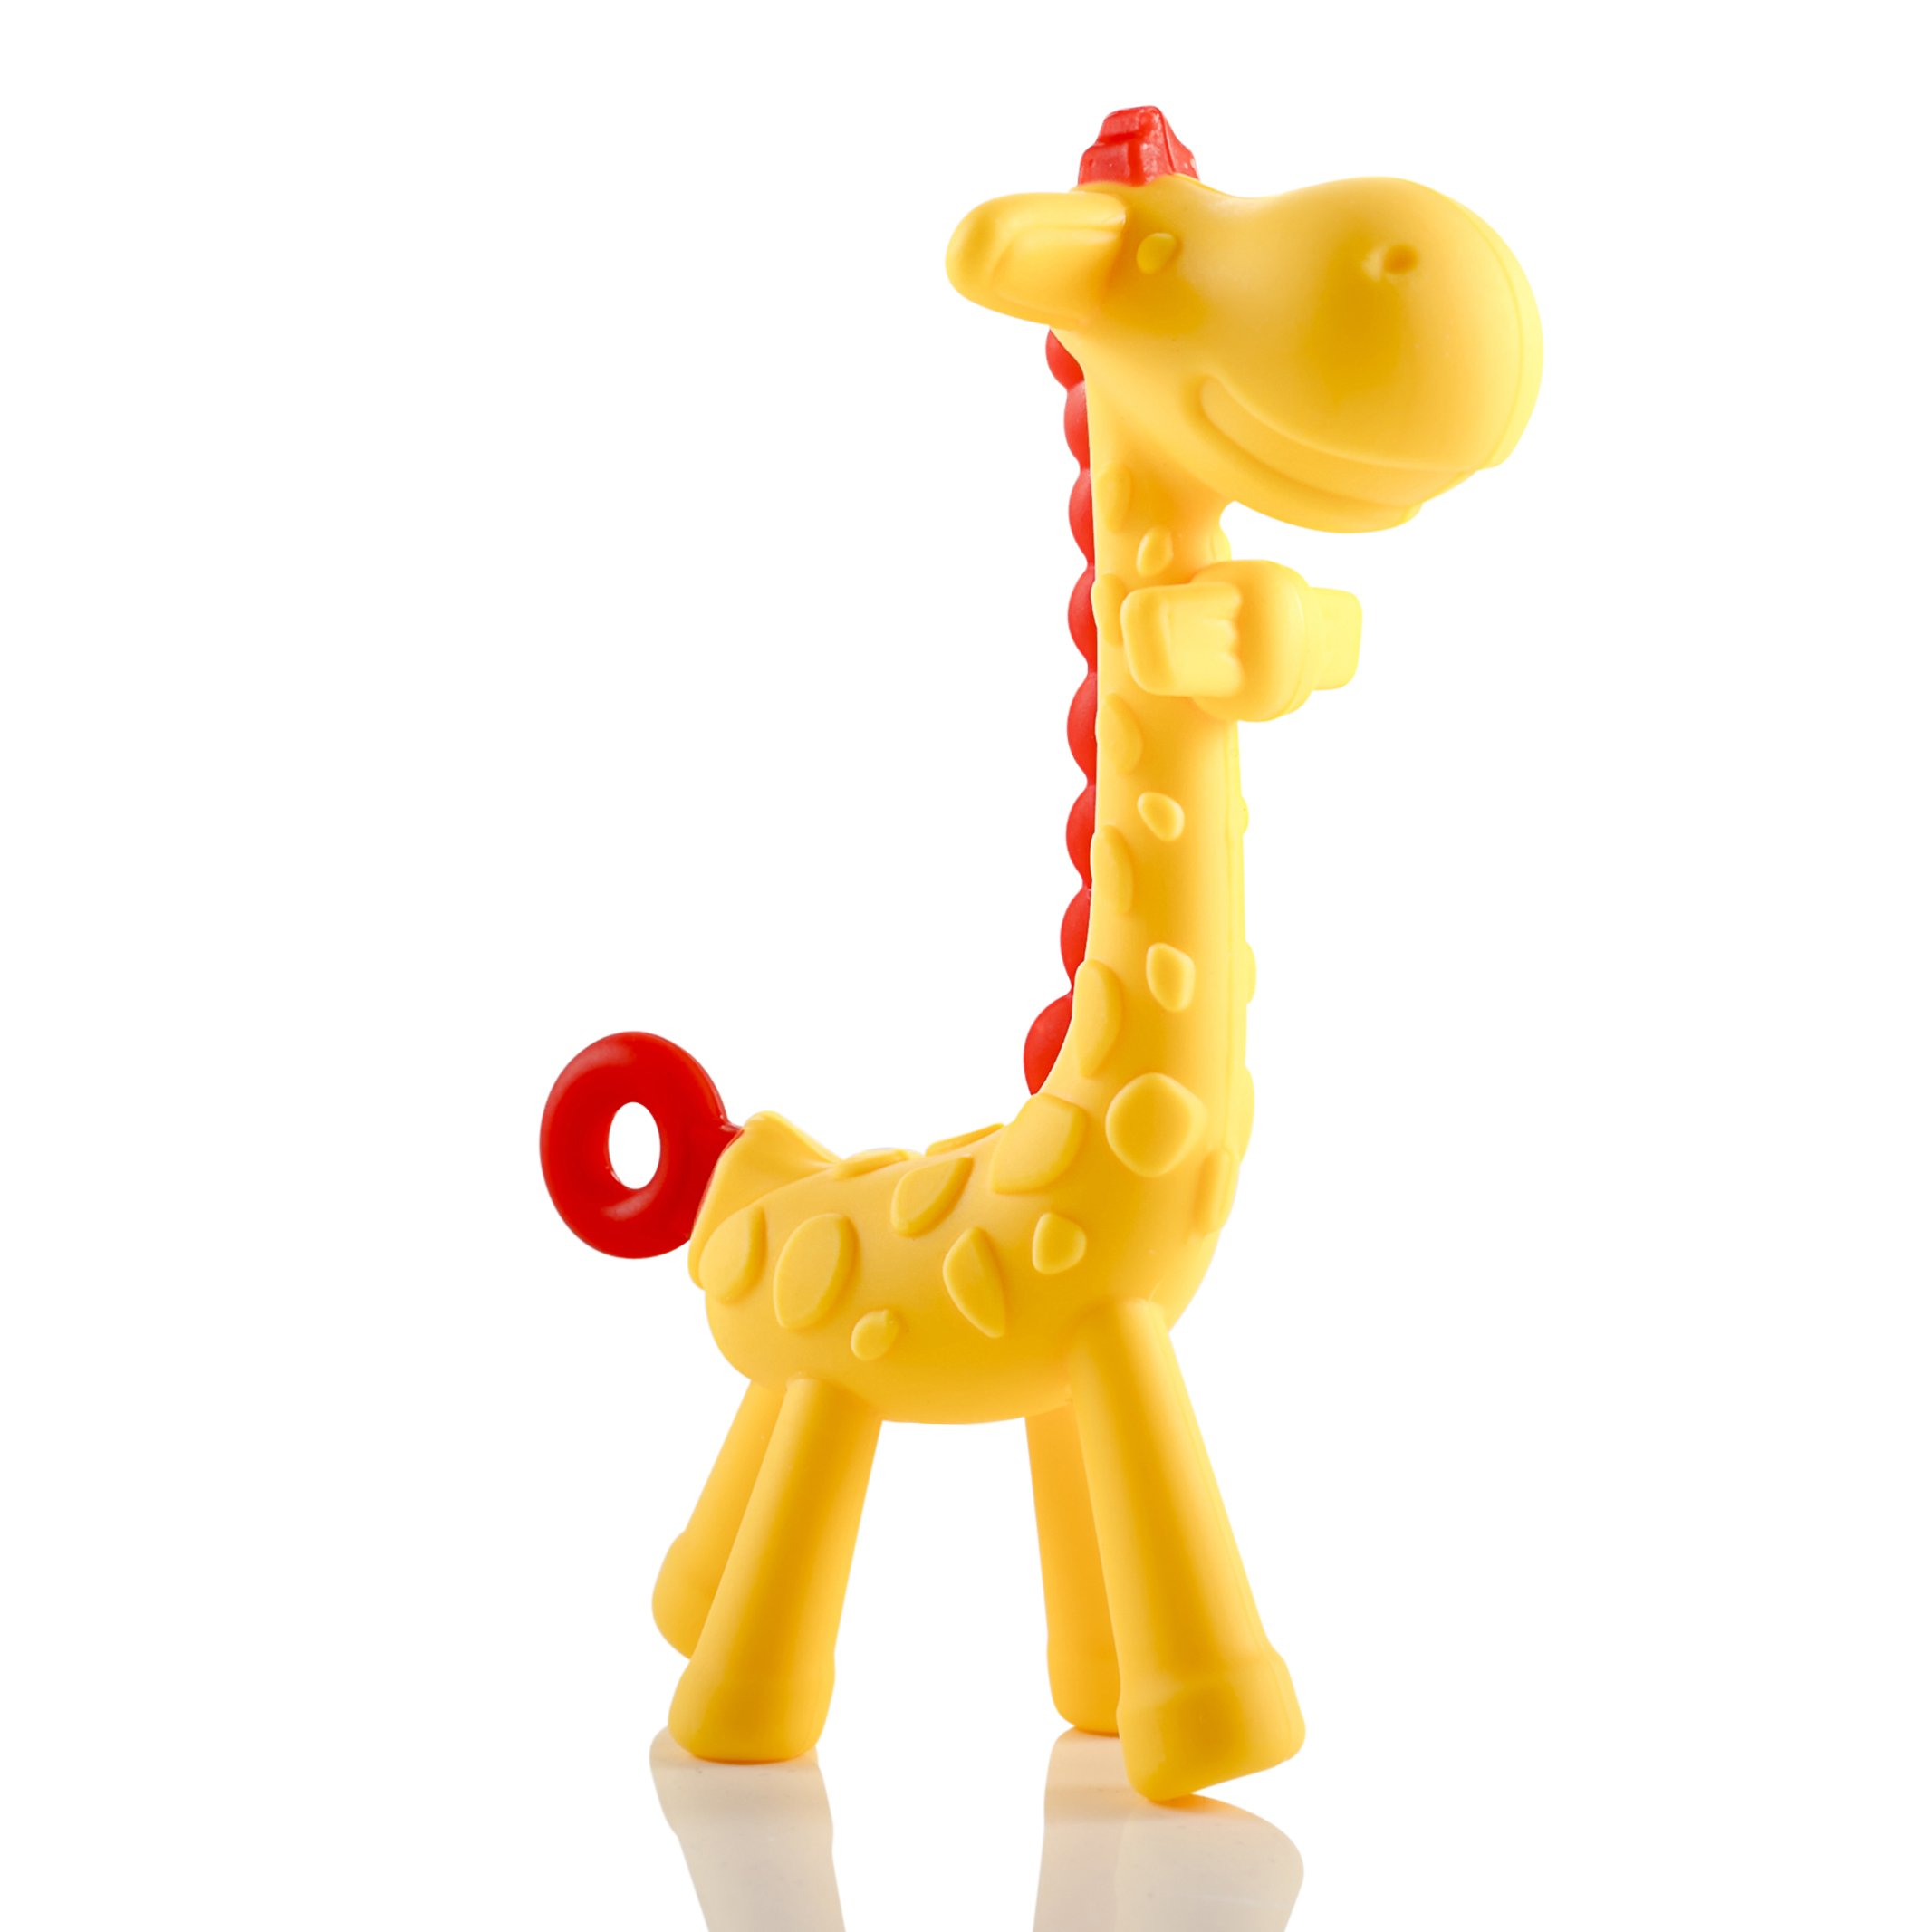 Giraffe Baby Teether Toy | Natural & Organic BPA-Free Silicone | Textured Infant Teething Relief | Freezable and Dishwasher-Safe | Cute Chew Toys for Boys, Girls, Babies, Toddlers, Newborn